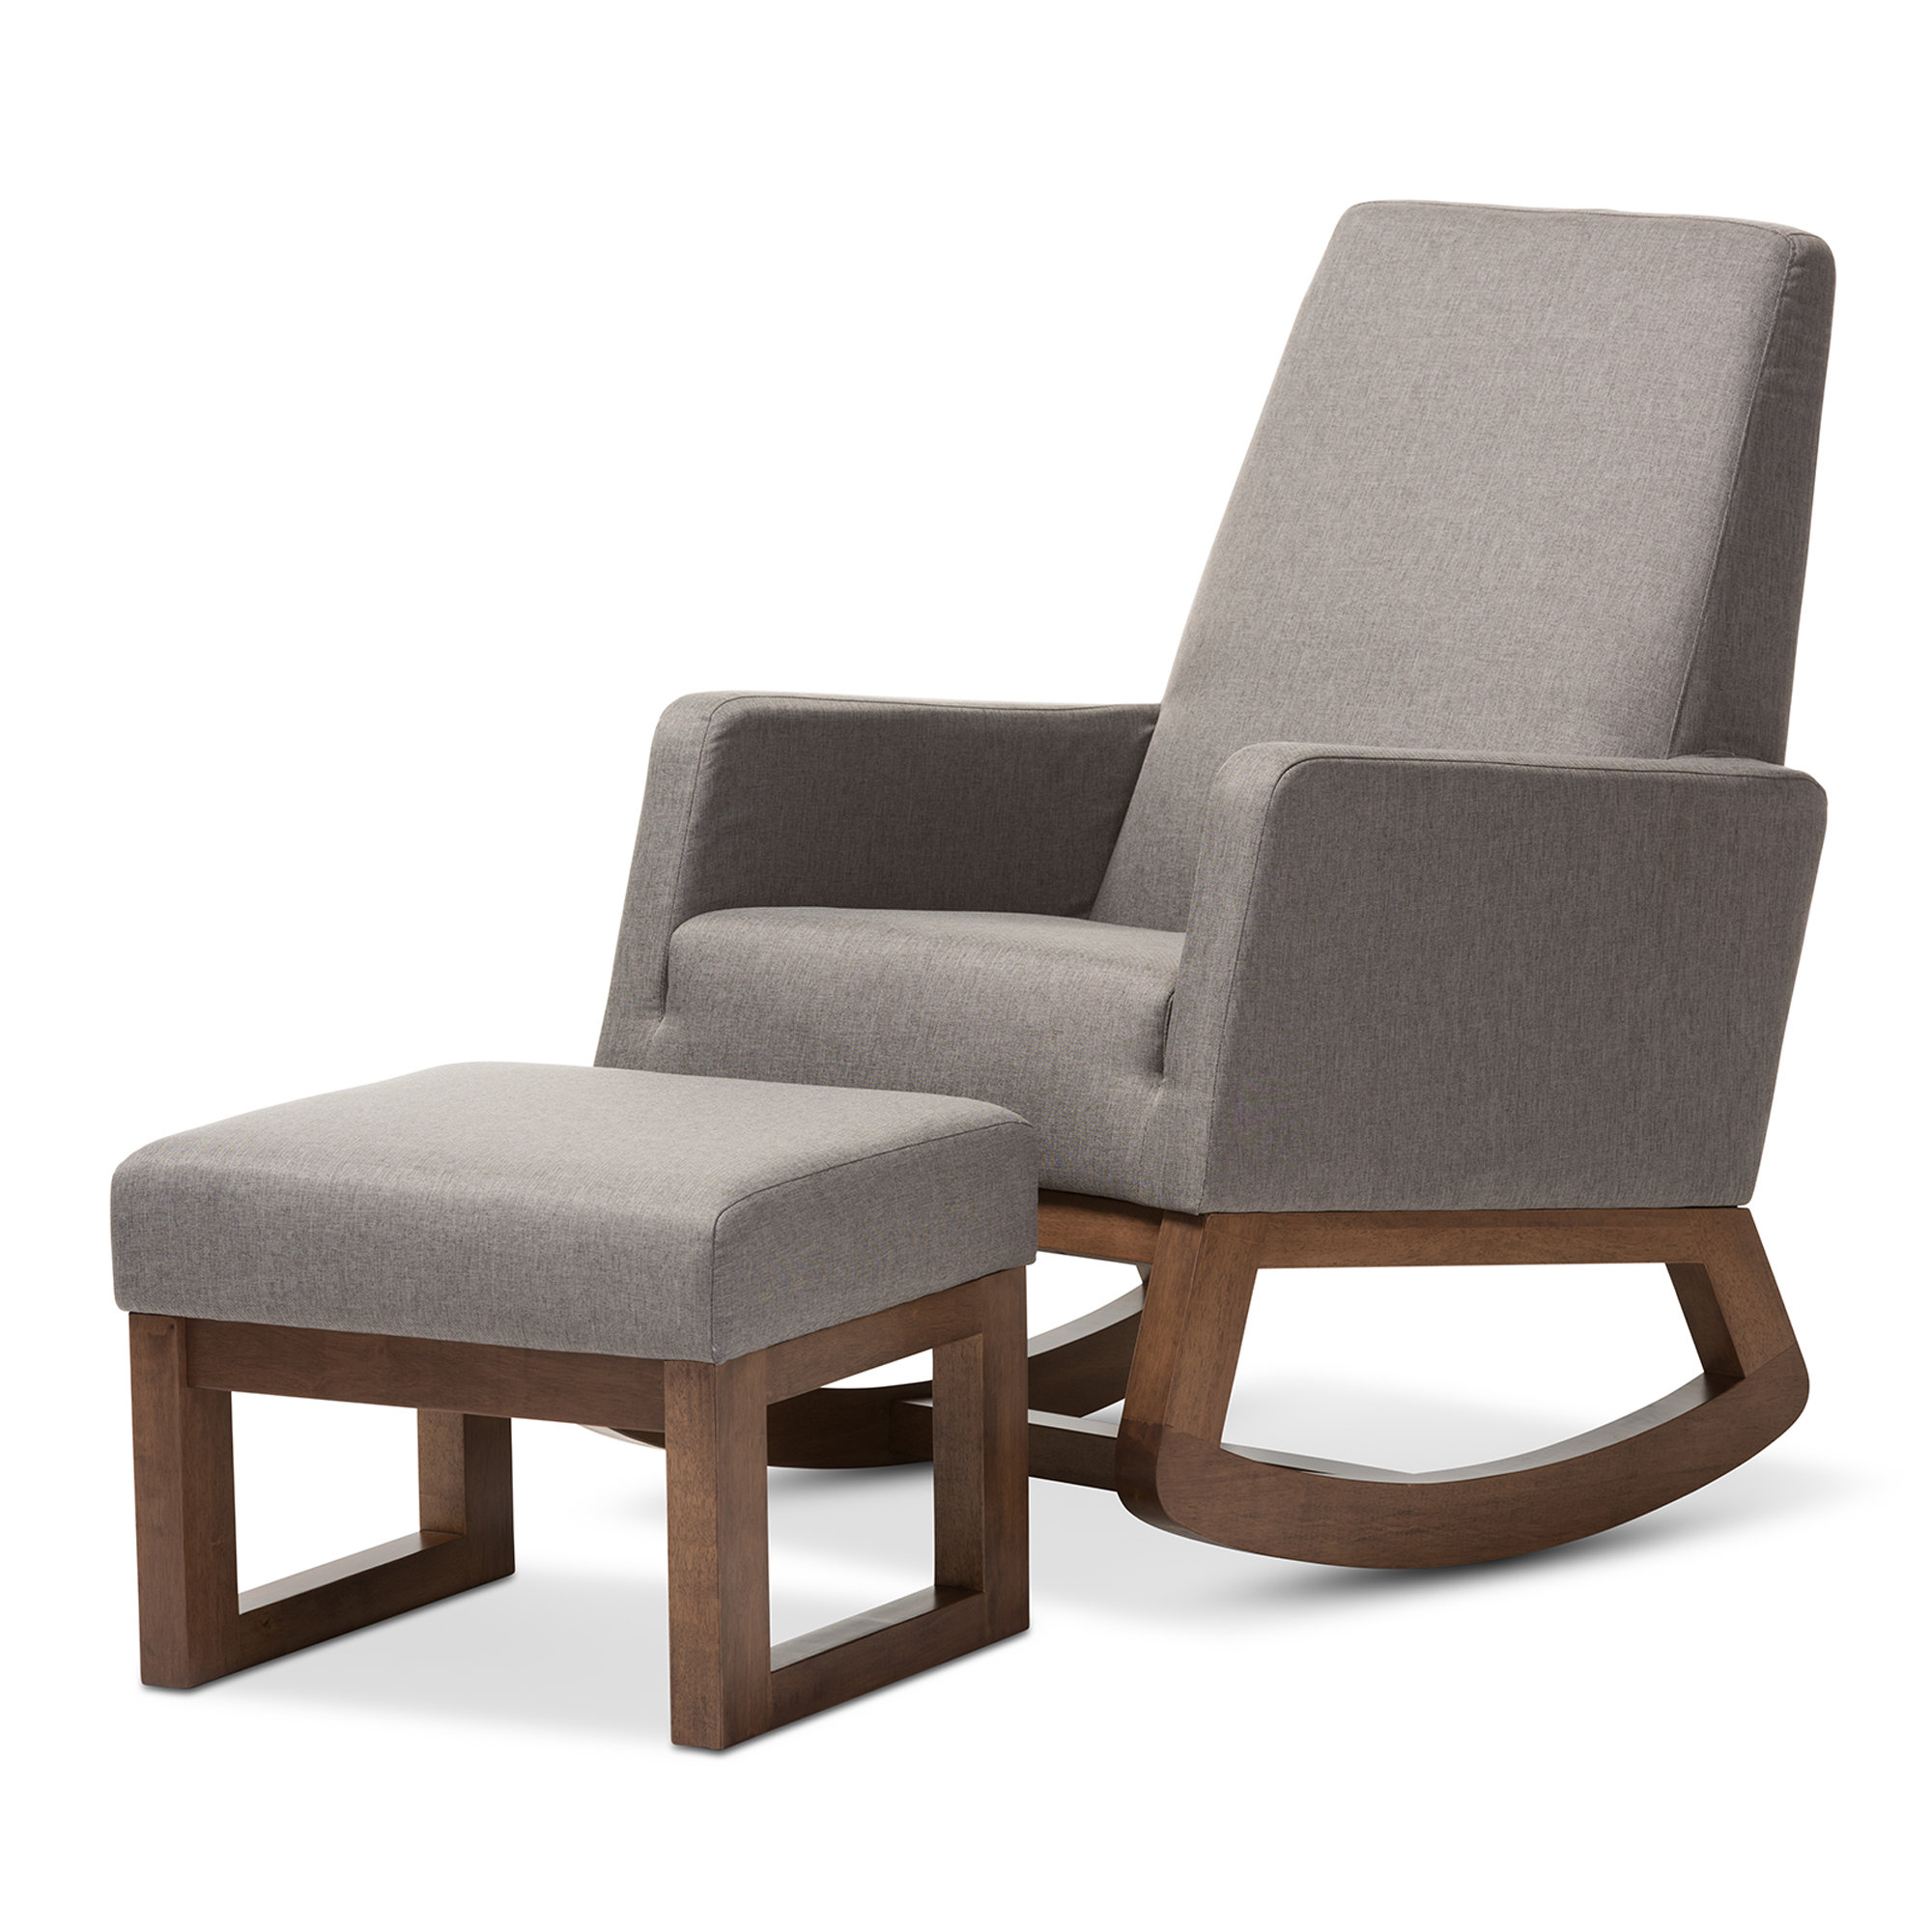 Modern & Contemporary Upholstered Rocking Chairs | Allmodern With Regard To Mid Century Fabric Rocking Chairs (View 16 of 20)